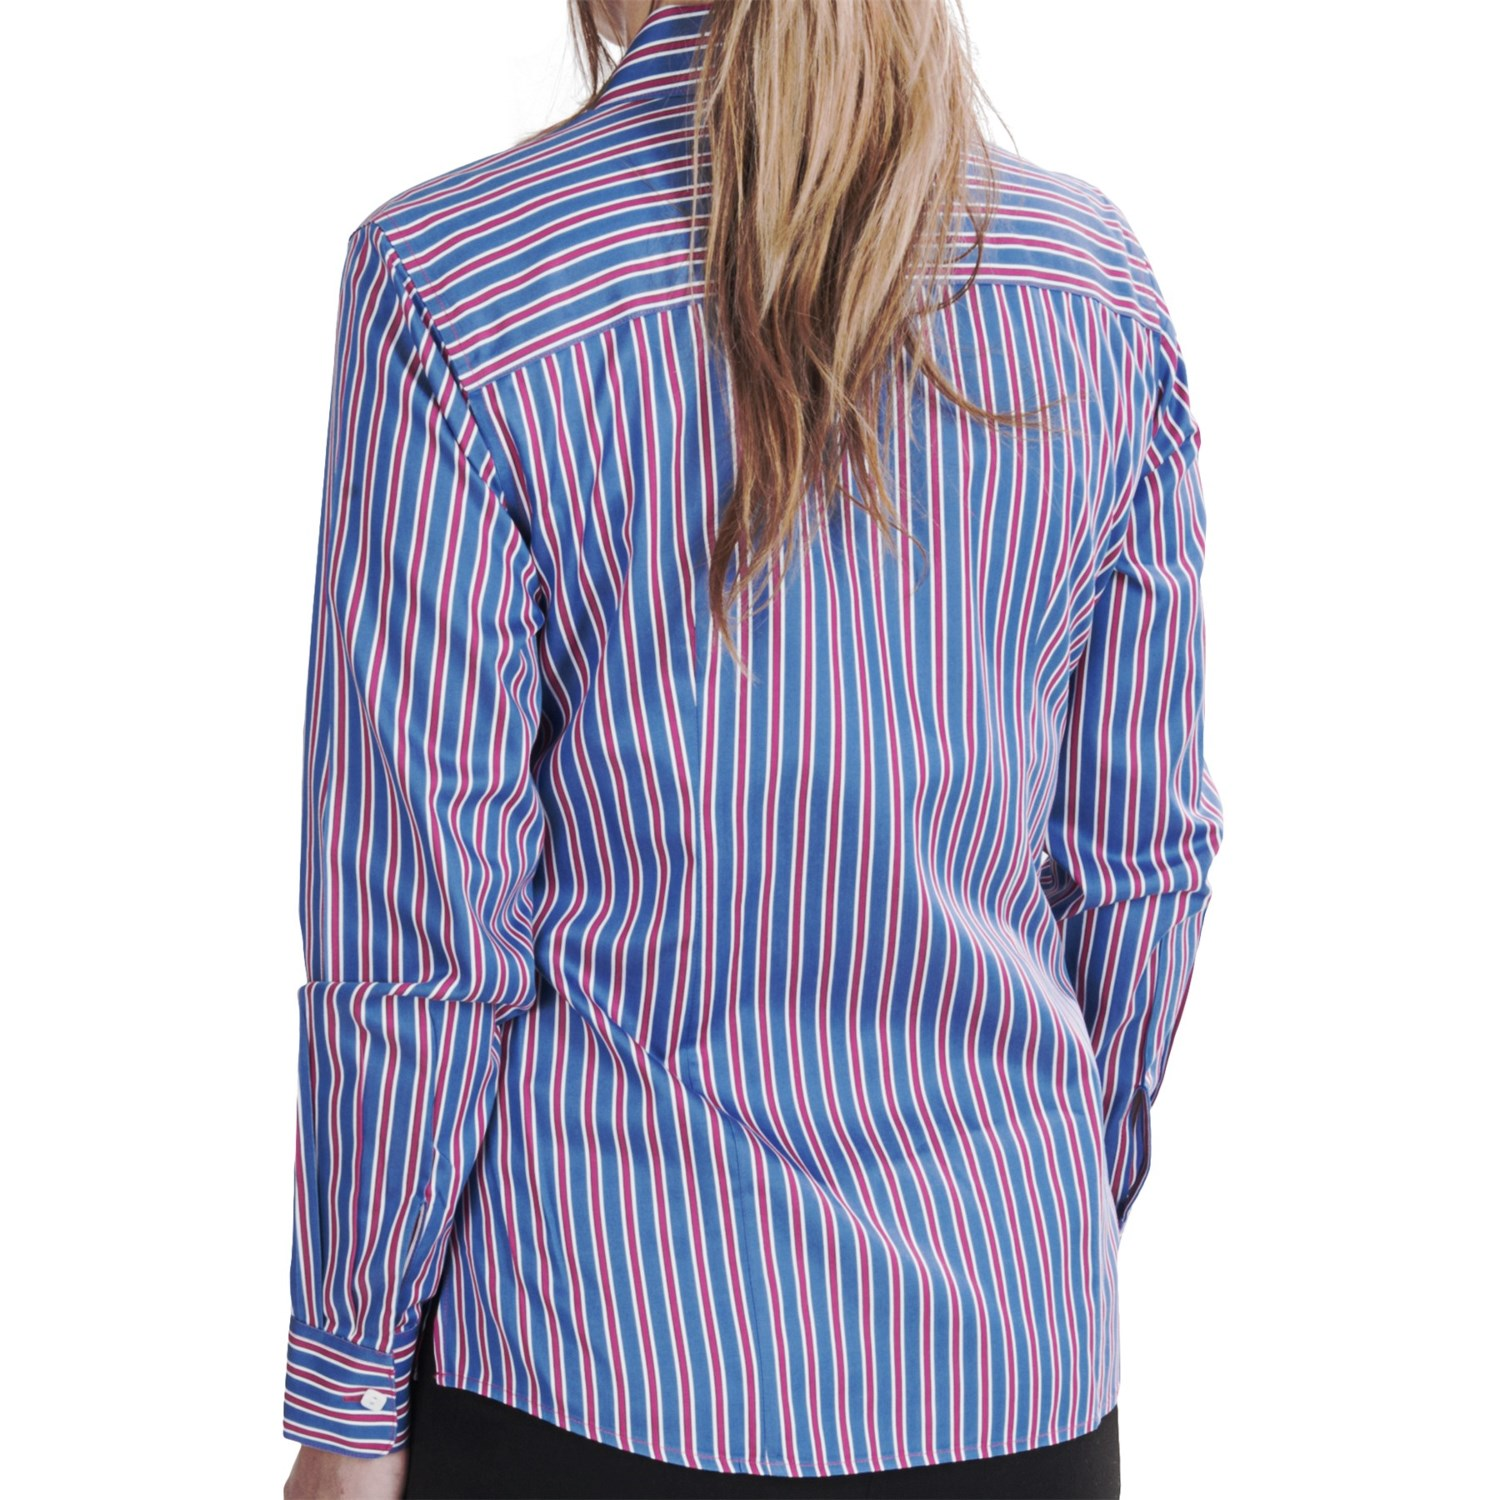 foxcroft multi stripe fitted shirt for women 7028k